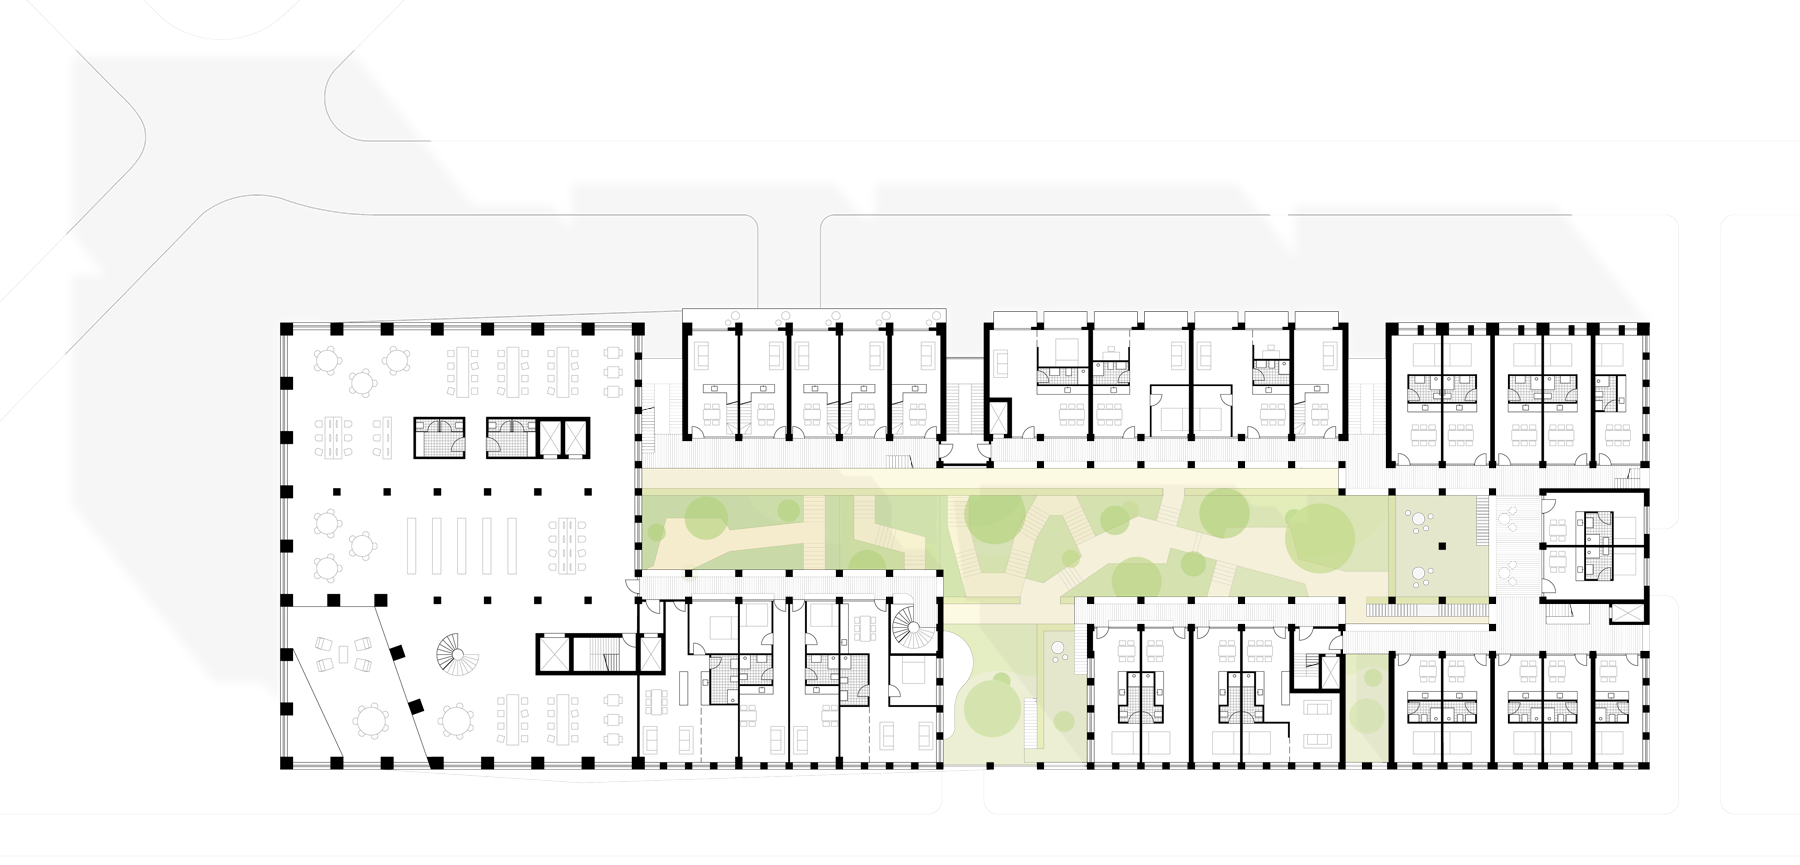 fourth floor plan of Kop Zuidas project by BETA architects space&matter Evert Klinkenberg Auguste Gus van Oppen